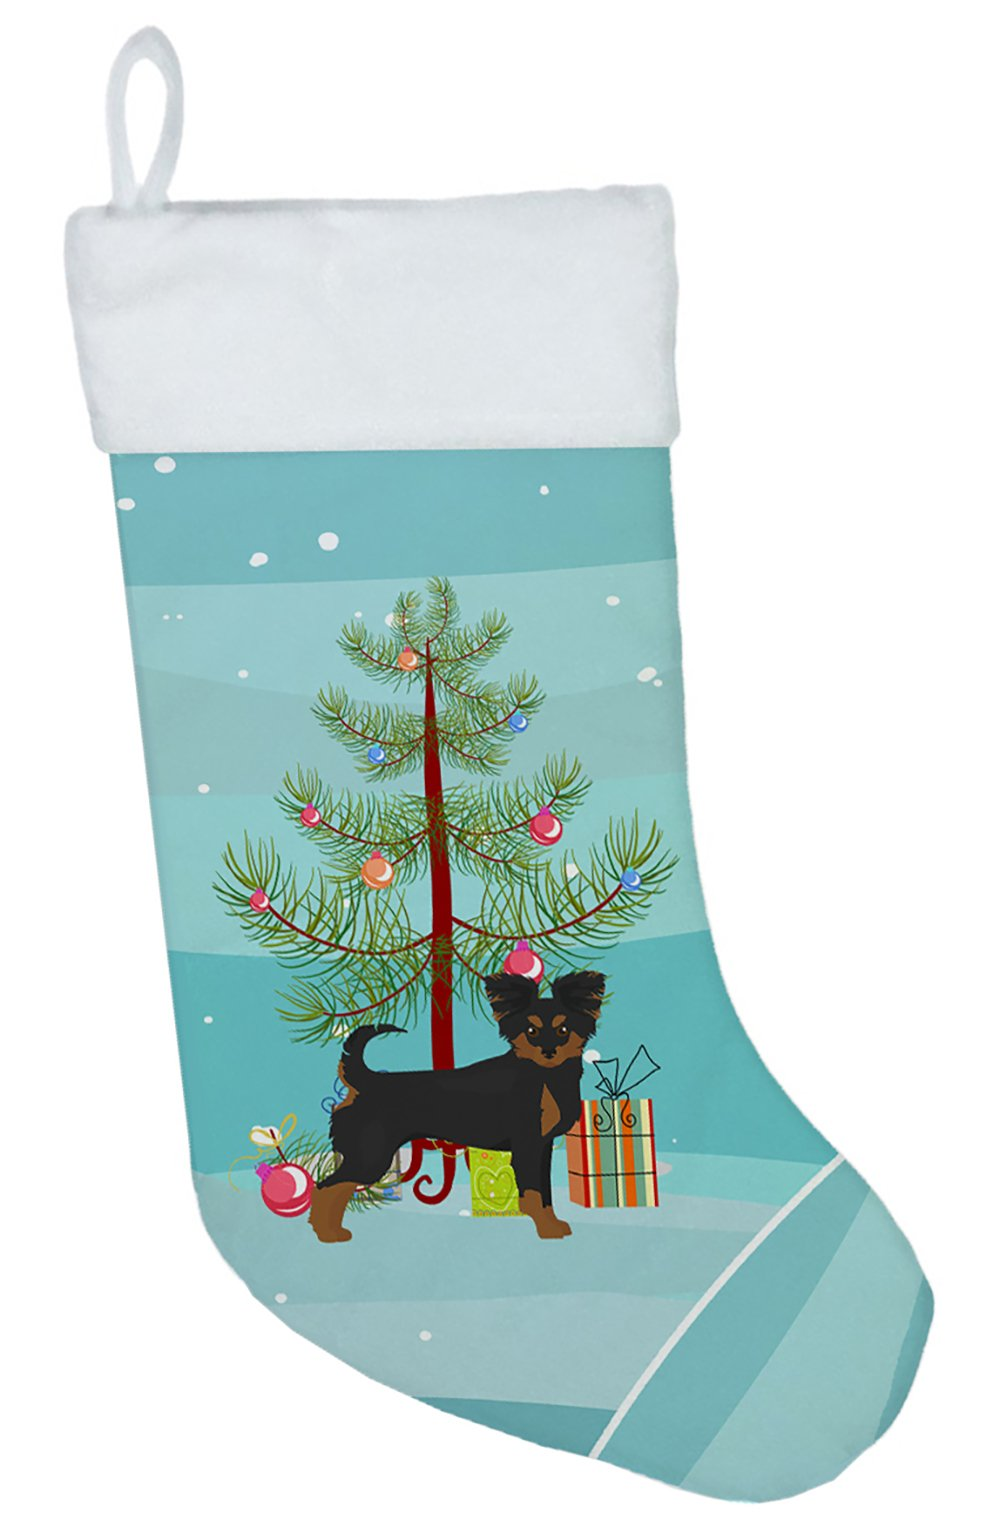 Black and Tan Chion Christmas Tree Christmas Stocking CK3813CS by Caroline's Treasures